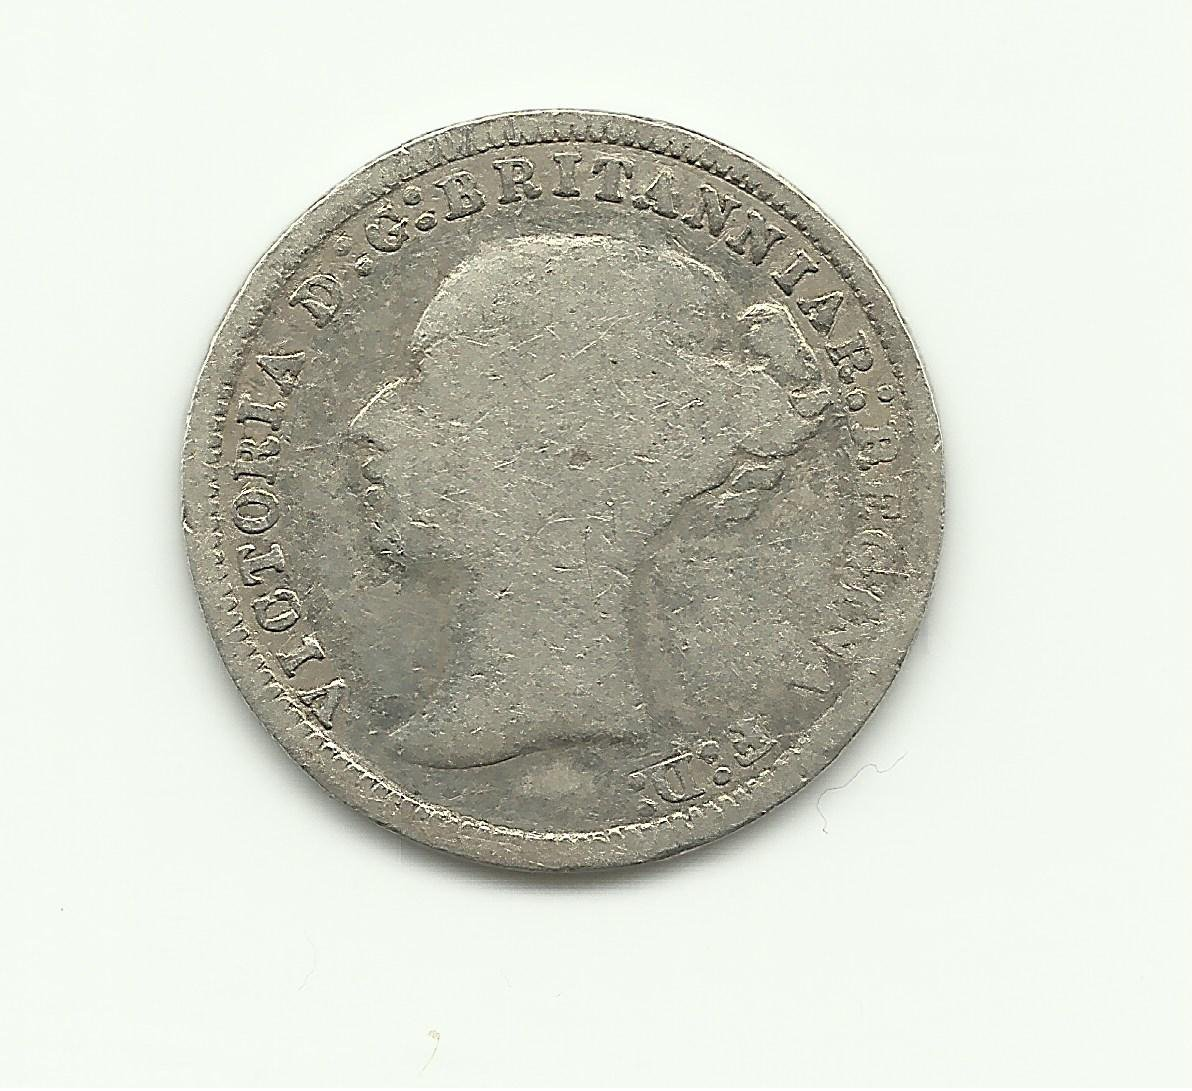 1875 3 Pence UK Silver Collection